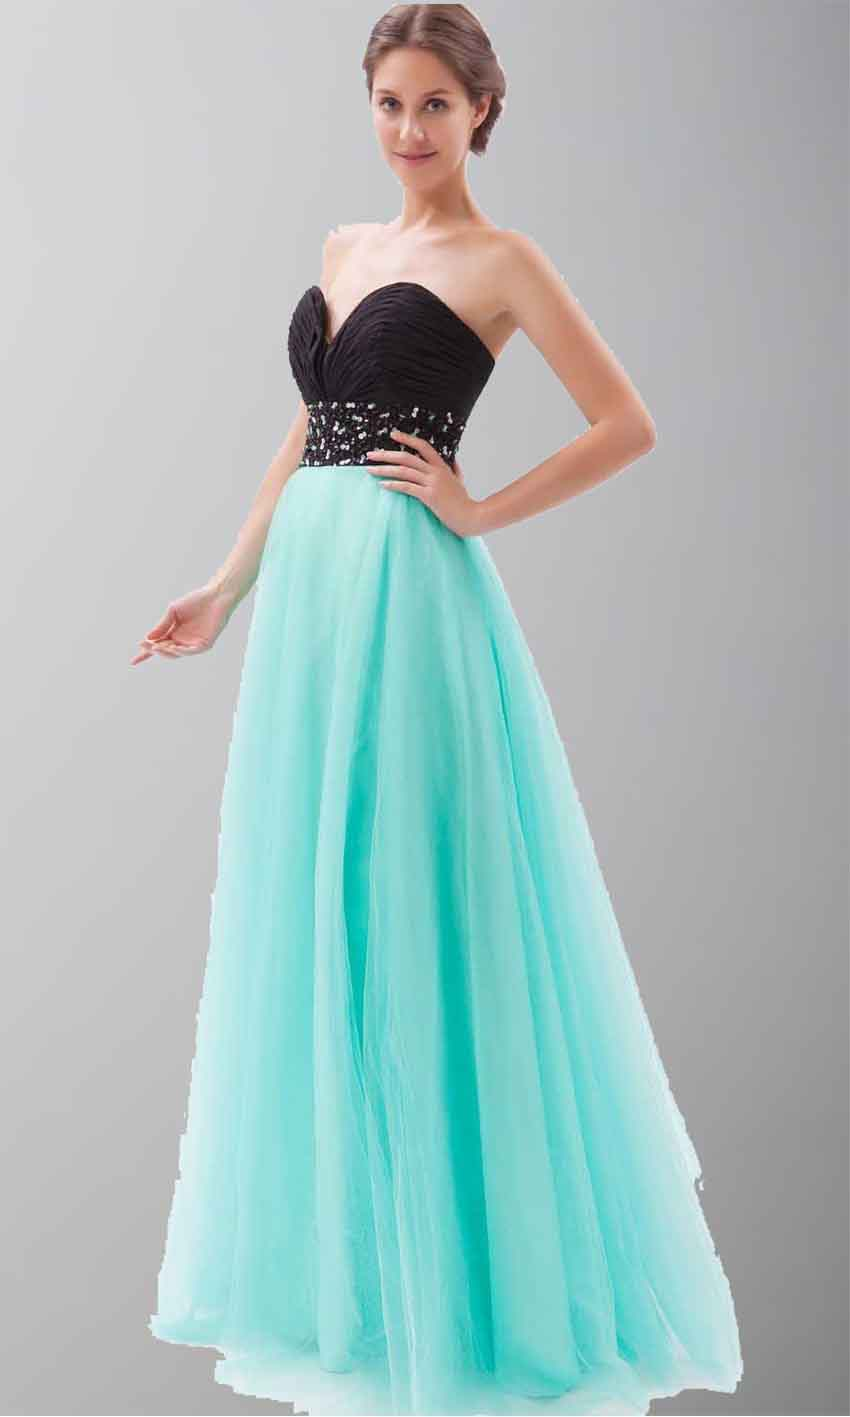 Black And Teal Soft Tulle Long Princess Prom Dresses KSP264 [KSP264 ...